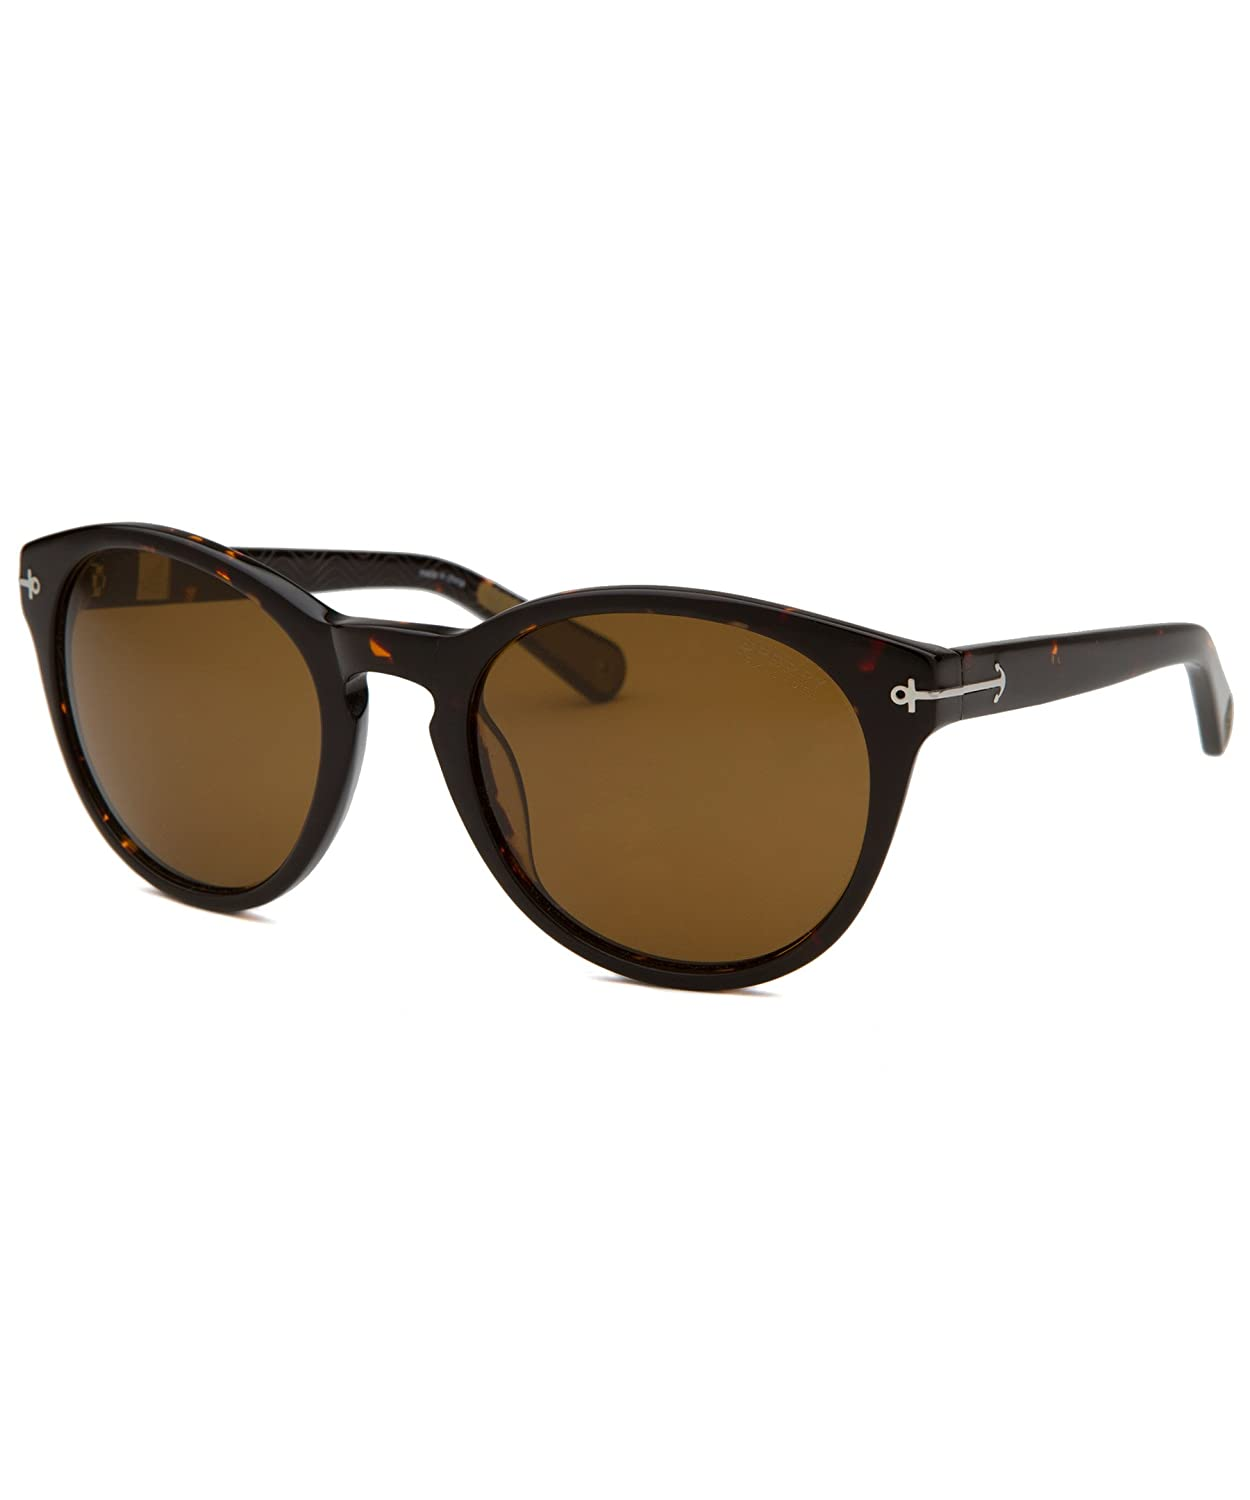 Sperry Top-Sider Weymouth C03 Tortoise Plastic Sunglasses